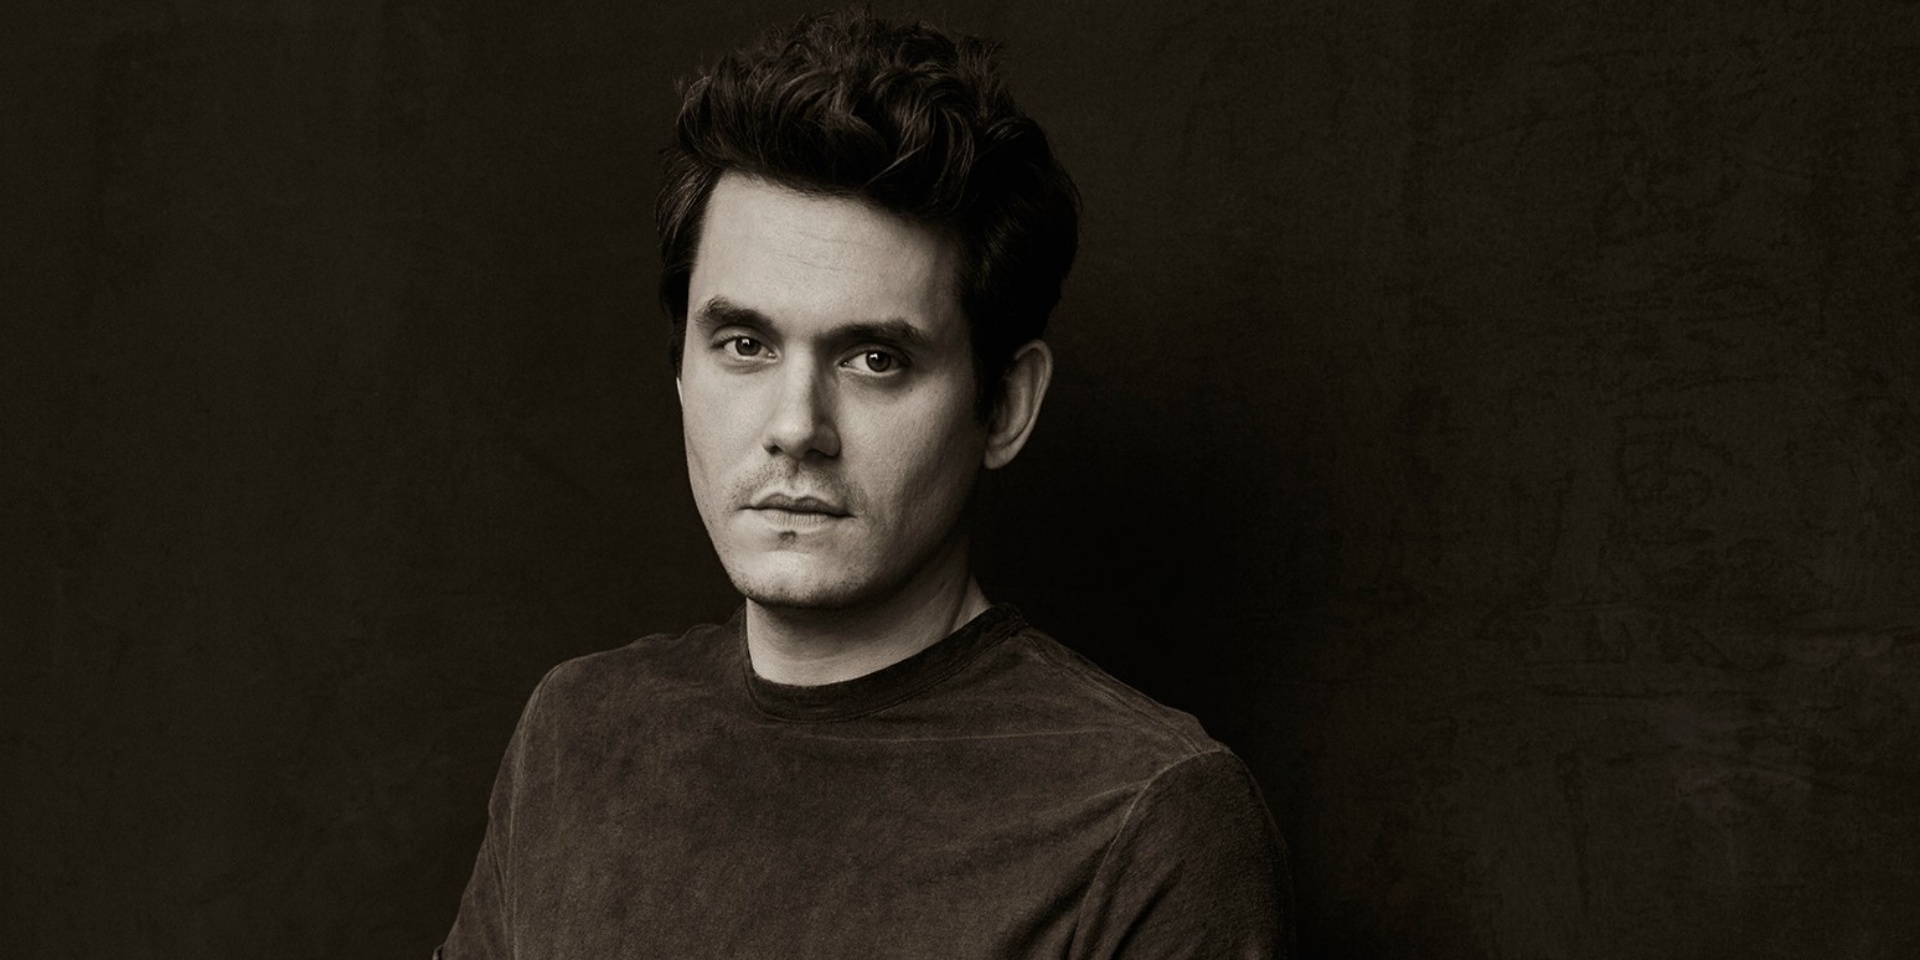 John Mayer's 'The Heart Of Life' to be adapted into new ABC drama series